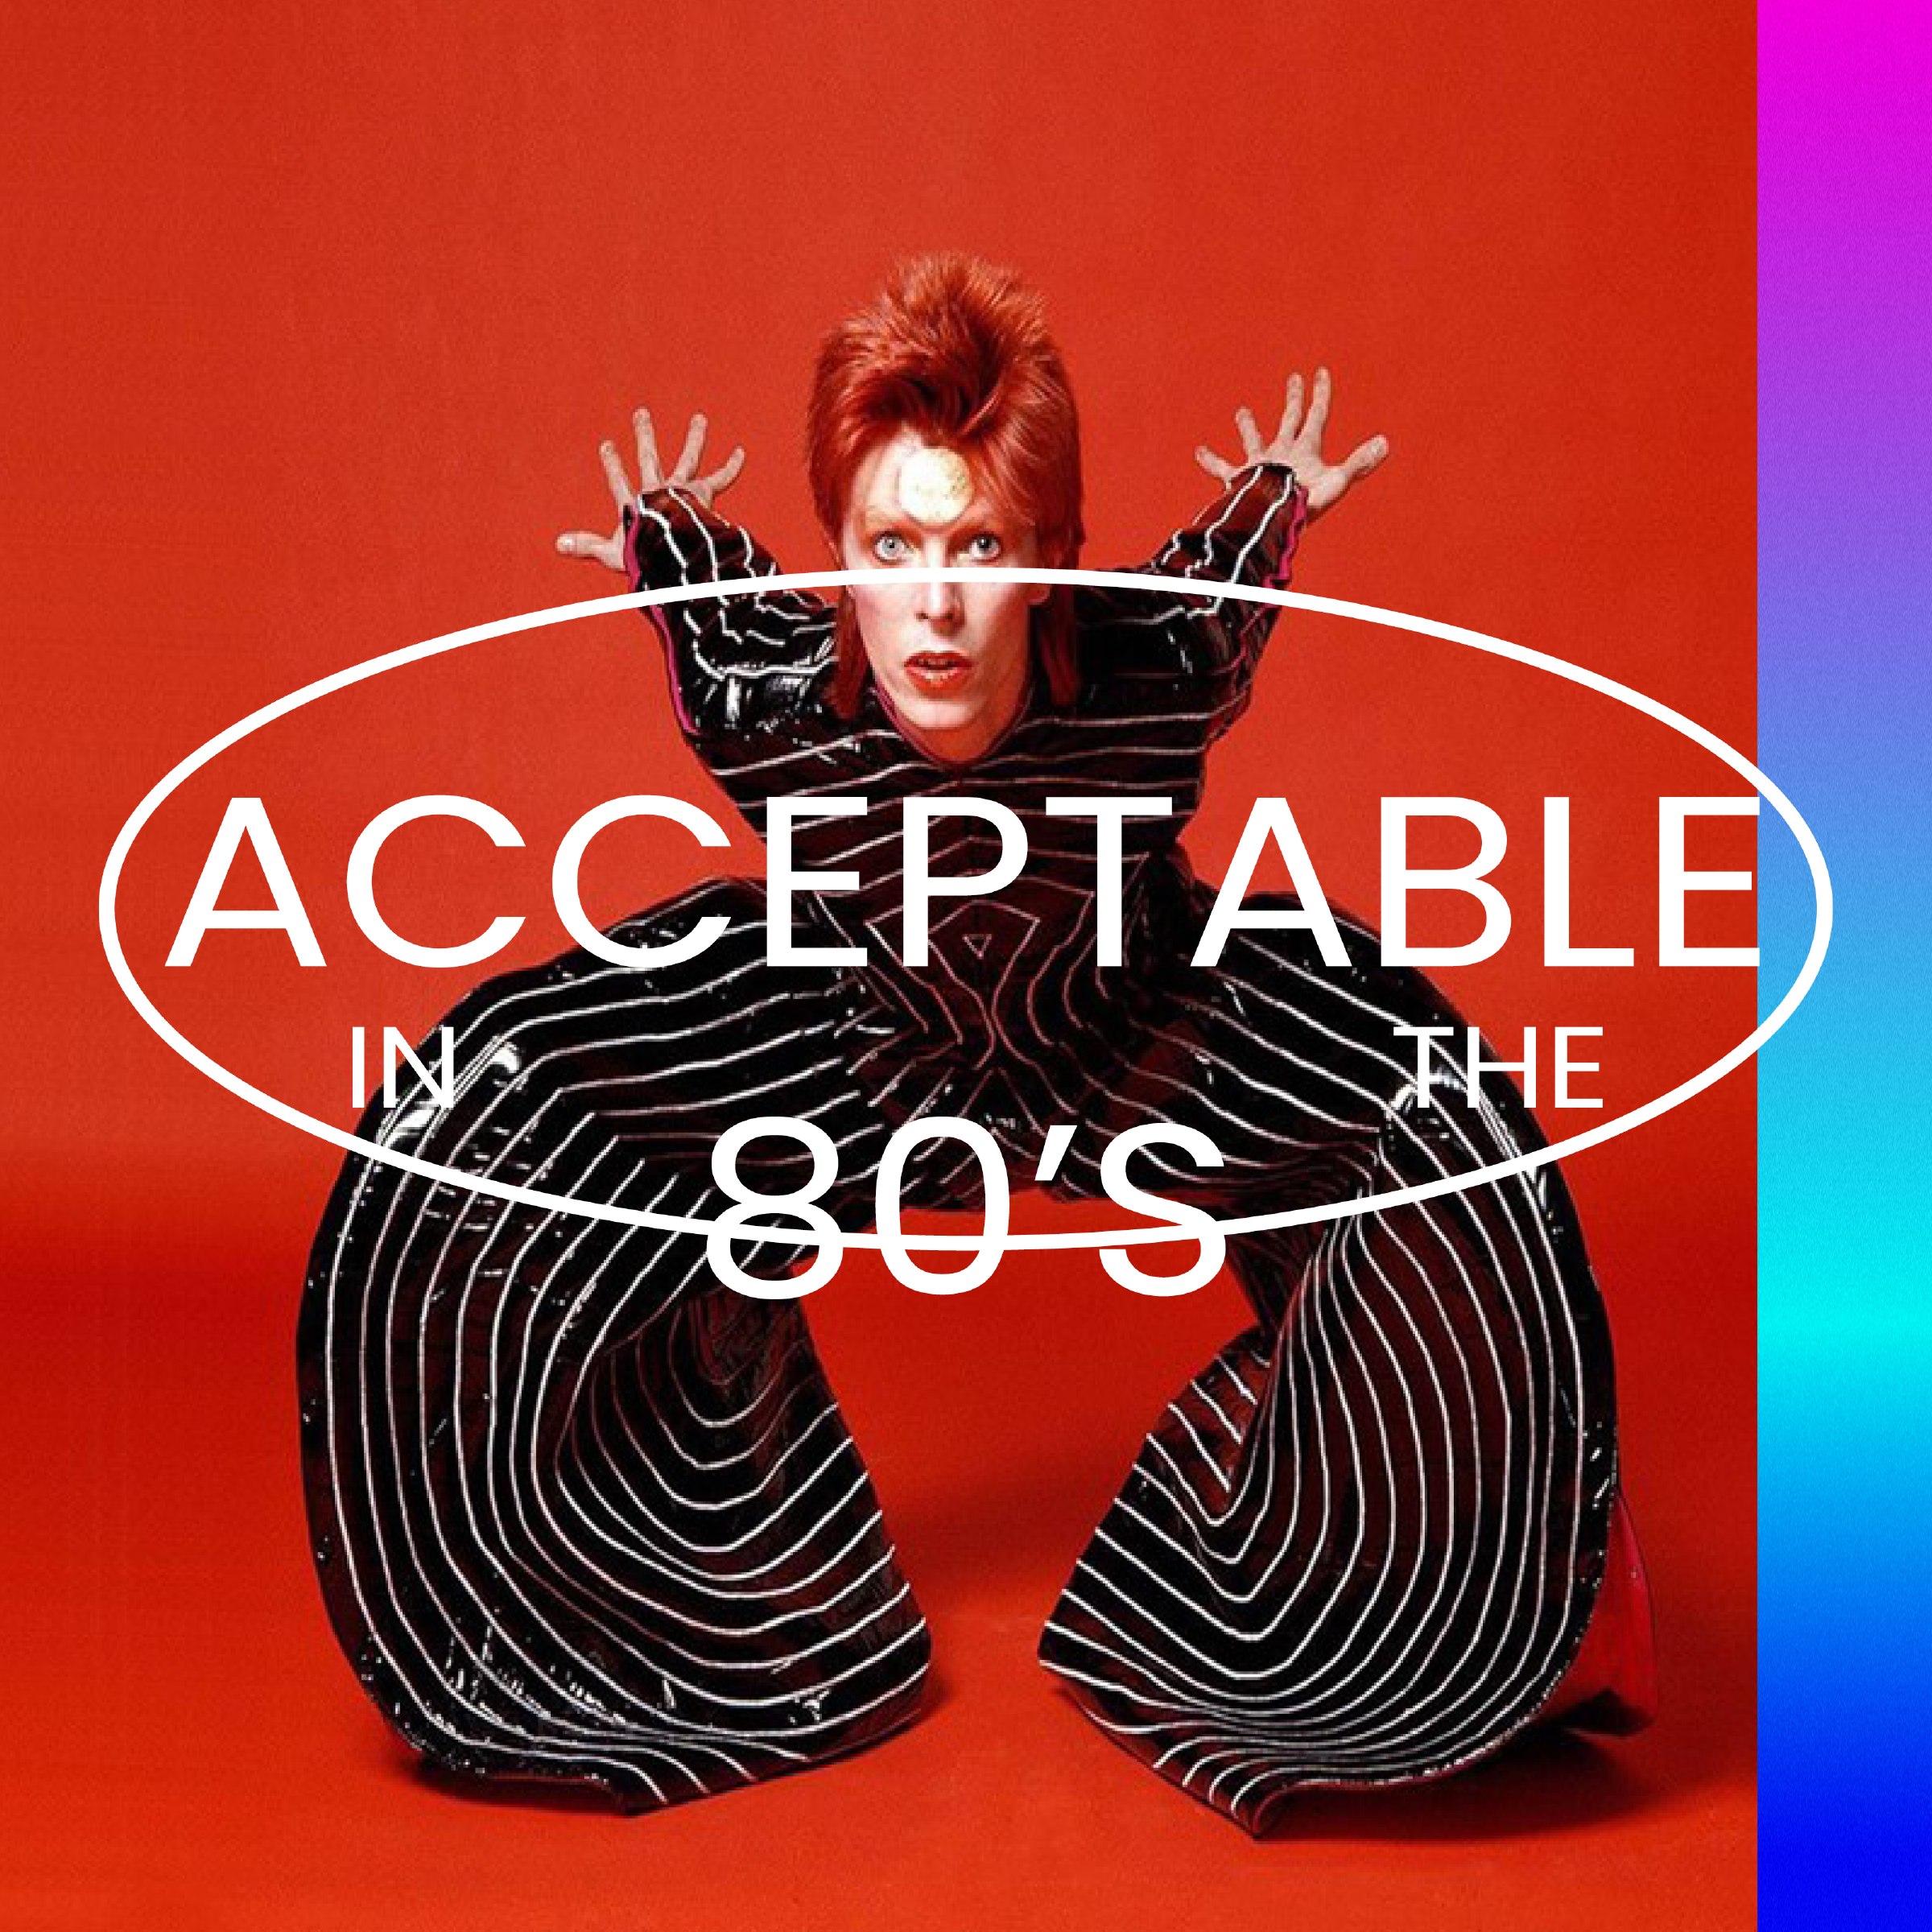 Acceptable in the 80's